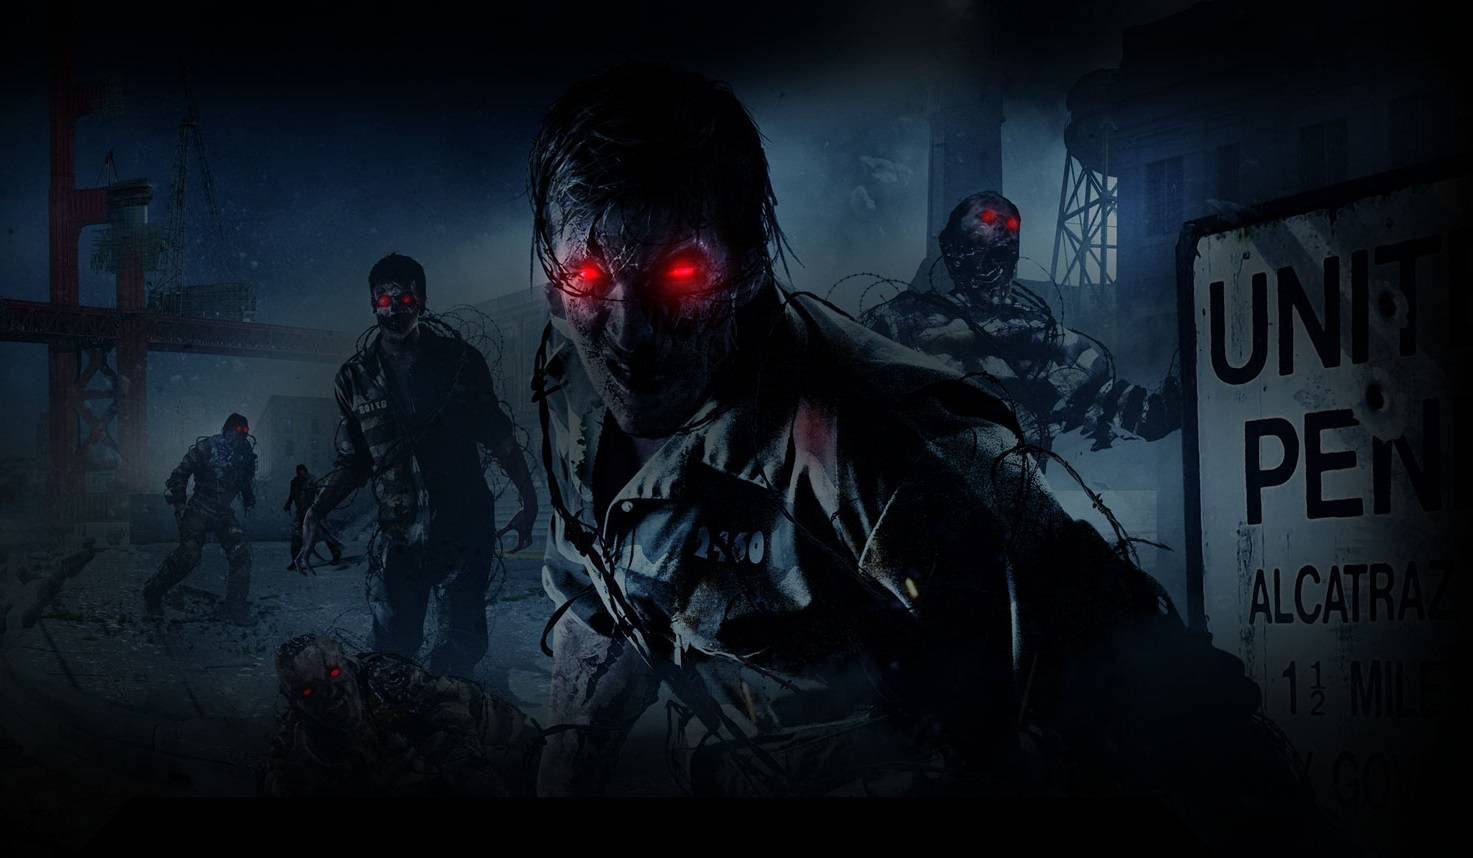 Call of duty black ops 2 neuer trailer zu mob of the - Mob of the dead pictures ...